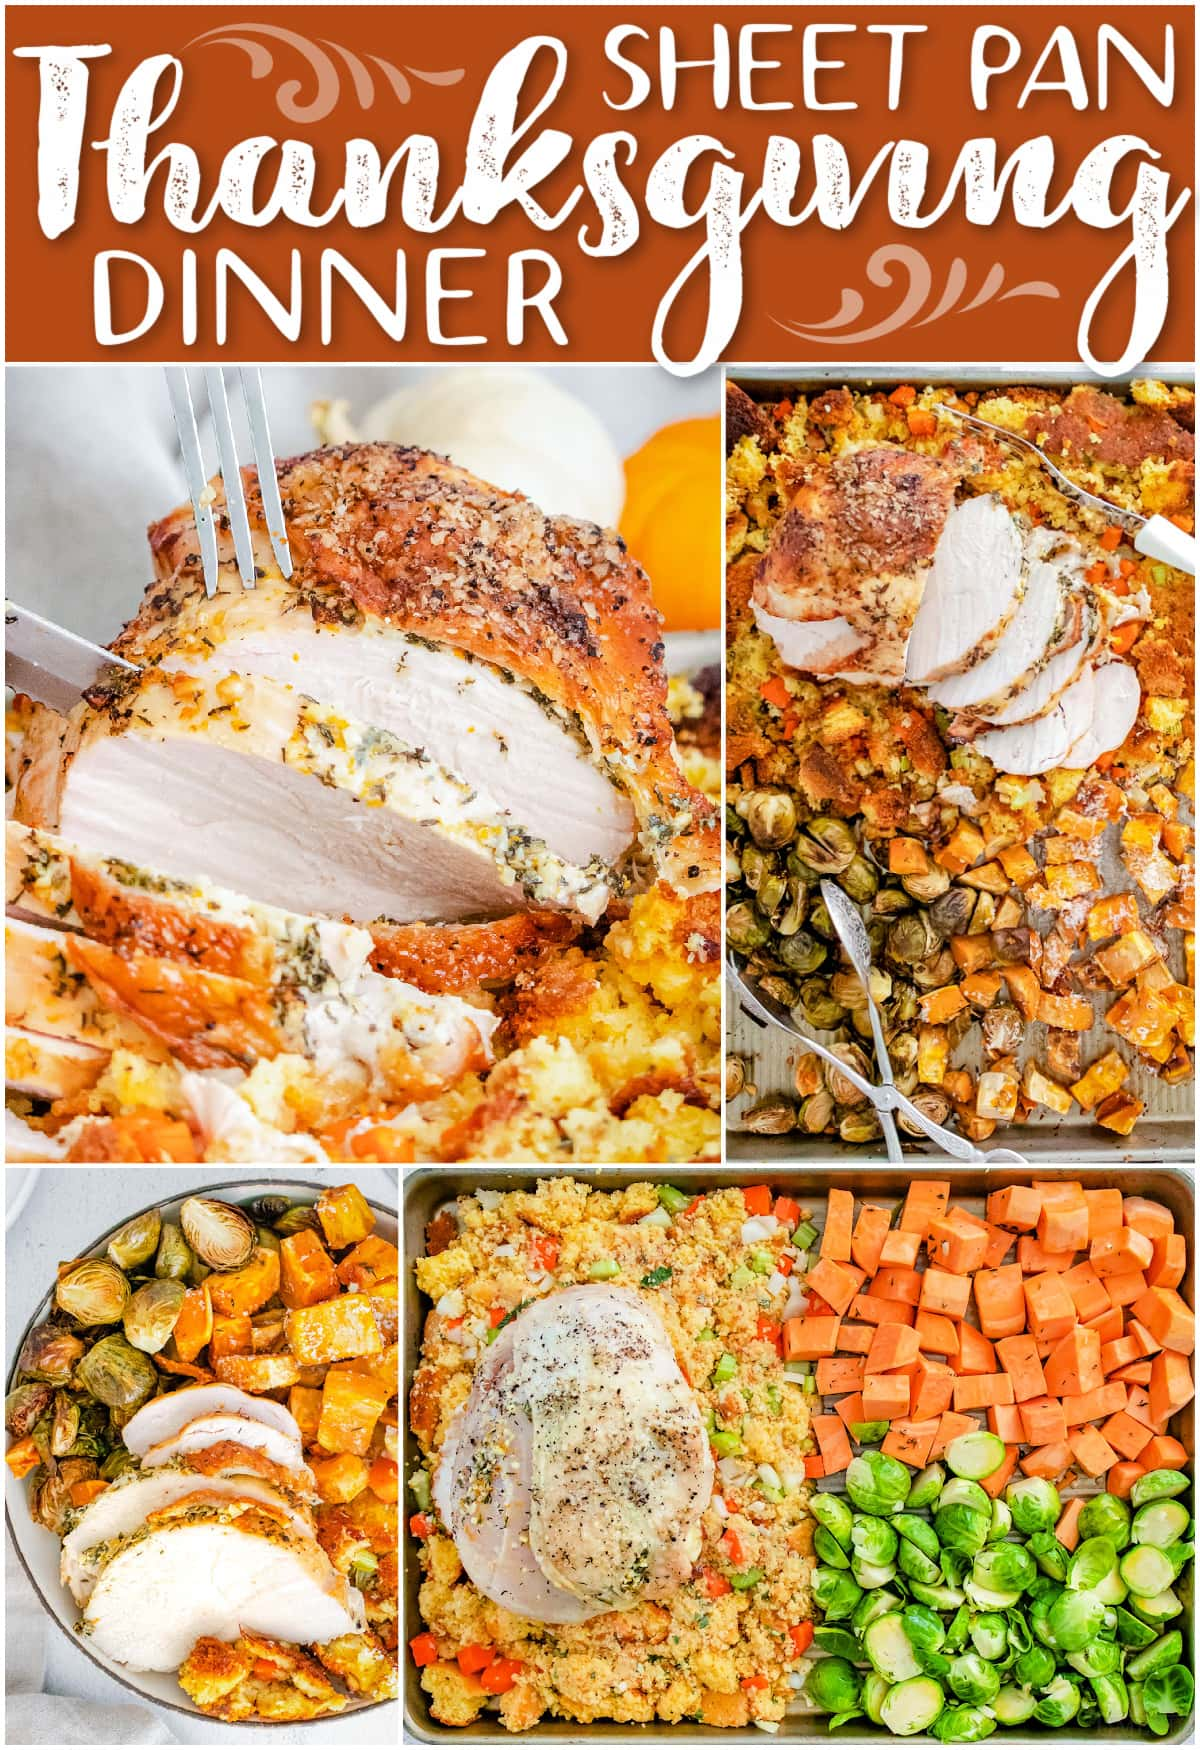 roast turkey breast sheet pan thanksgiving dinner collage showing all elements of the recipe